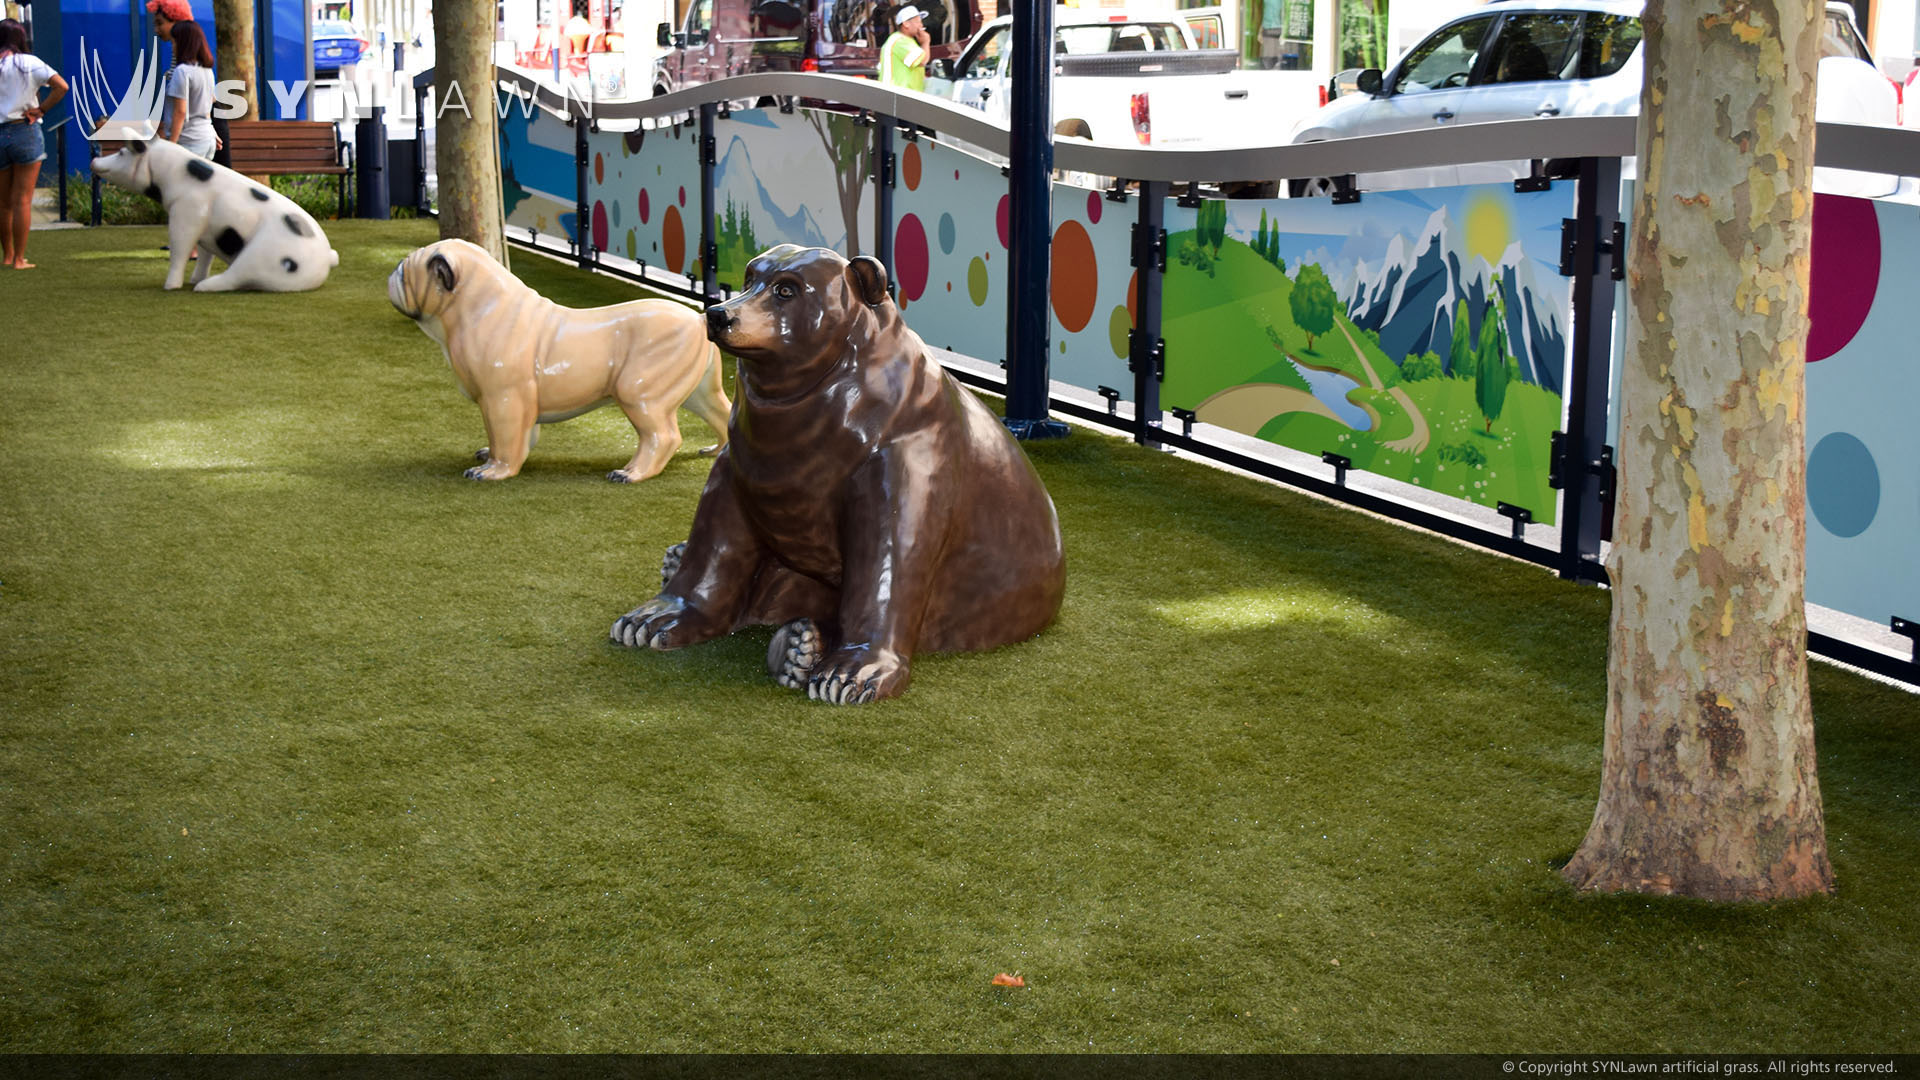 : A Pig, Bulldog, and Bear are Part of a Fake Animal Exhibit Built on Synthetic Turf